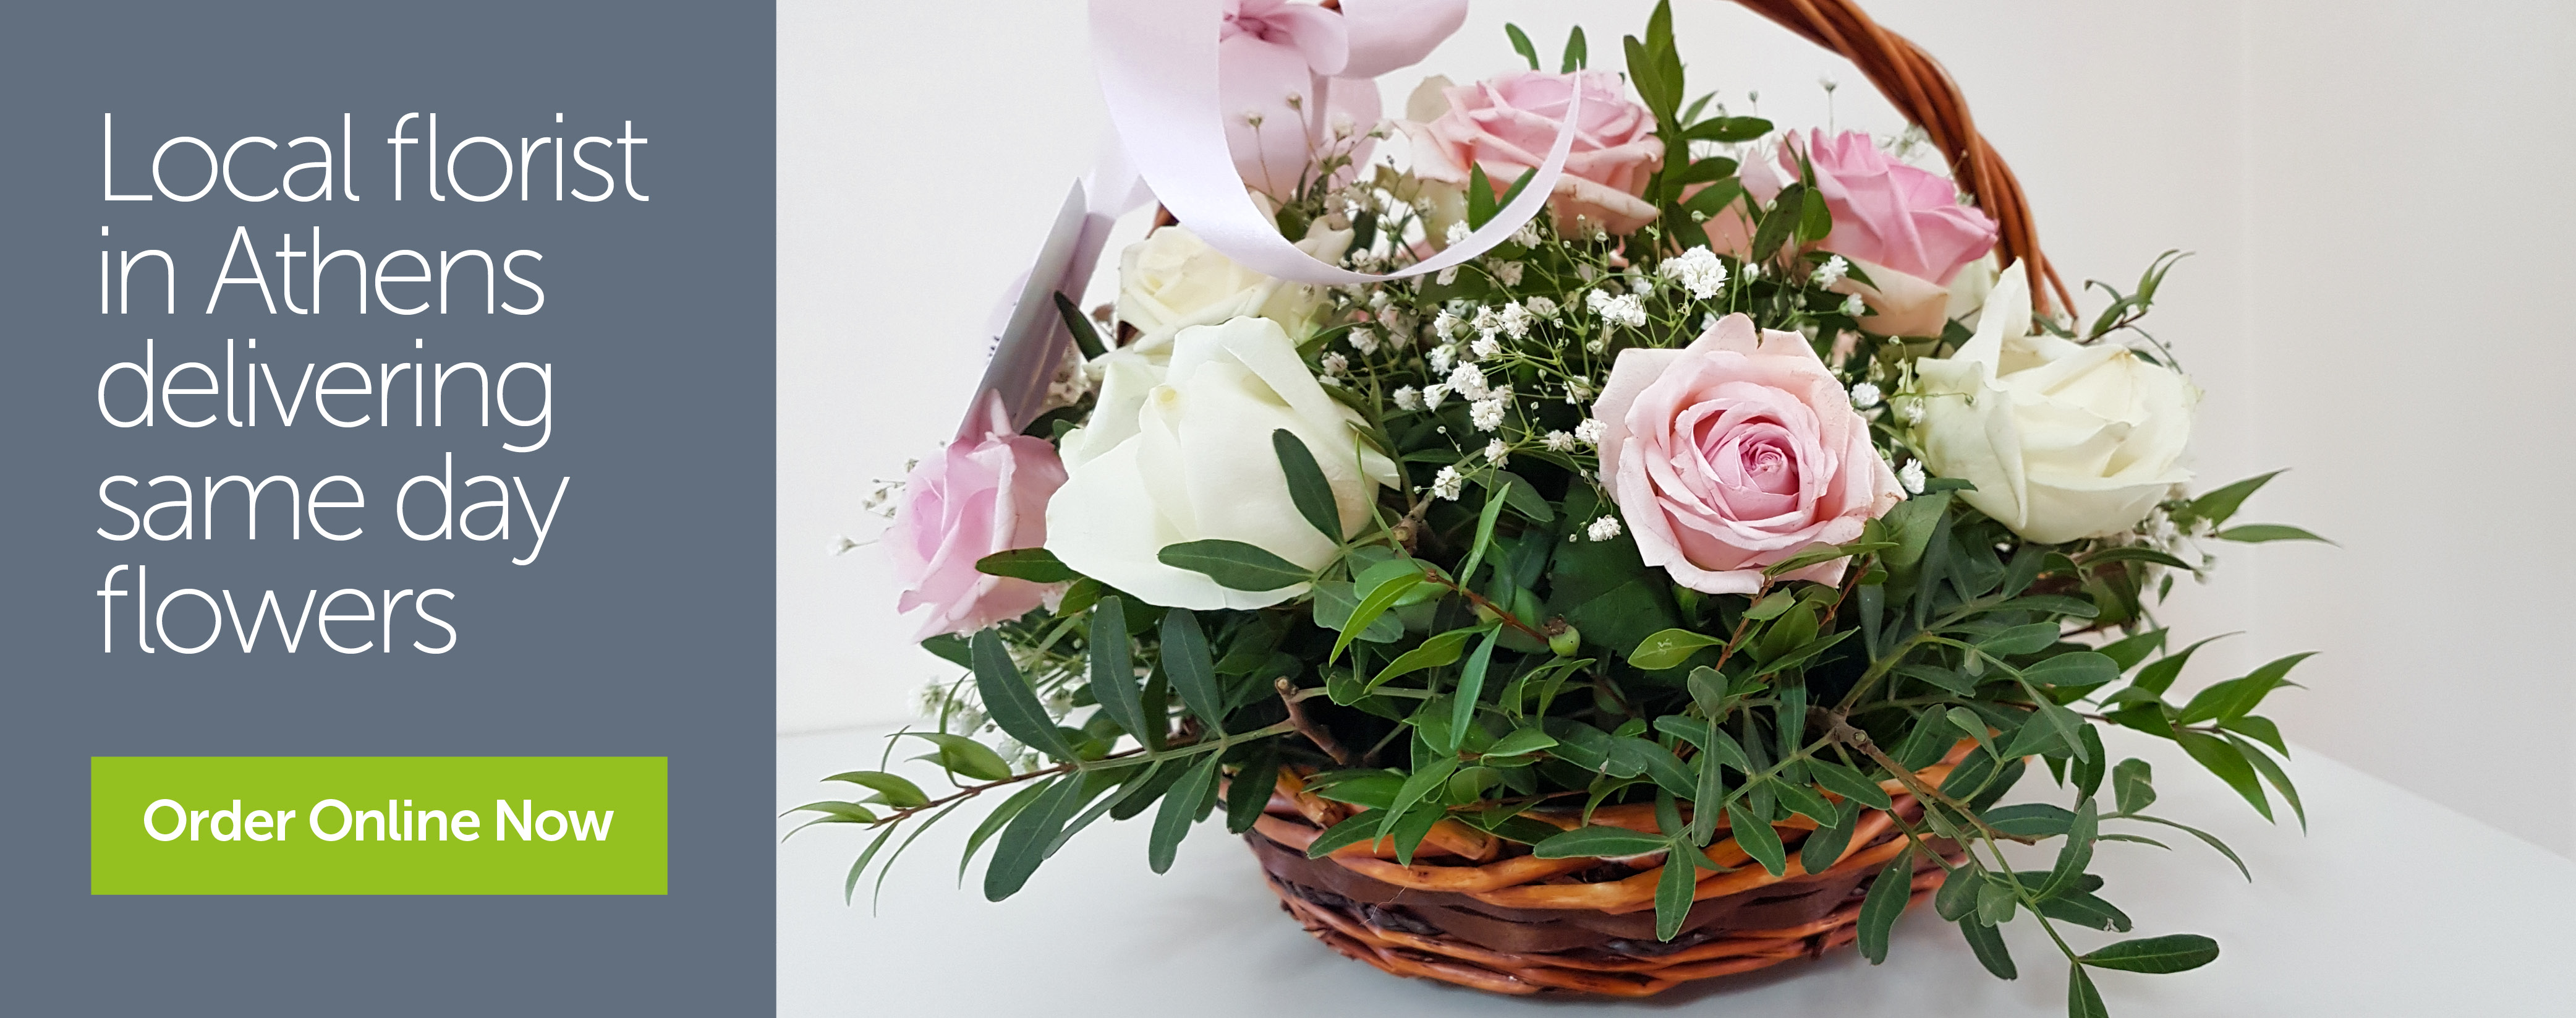 97fc954e619 Send flowers and plants, same day delivery